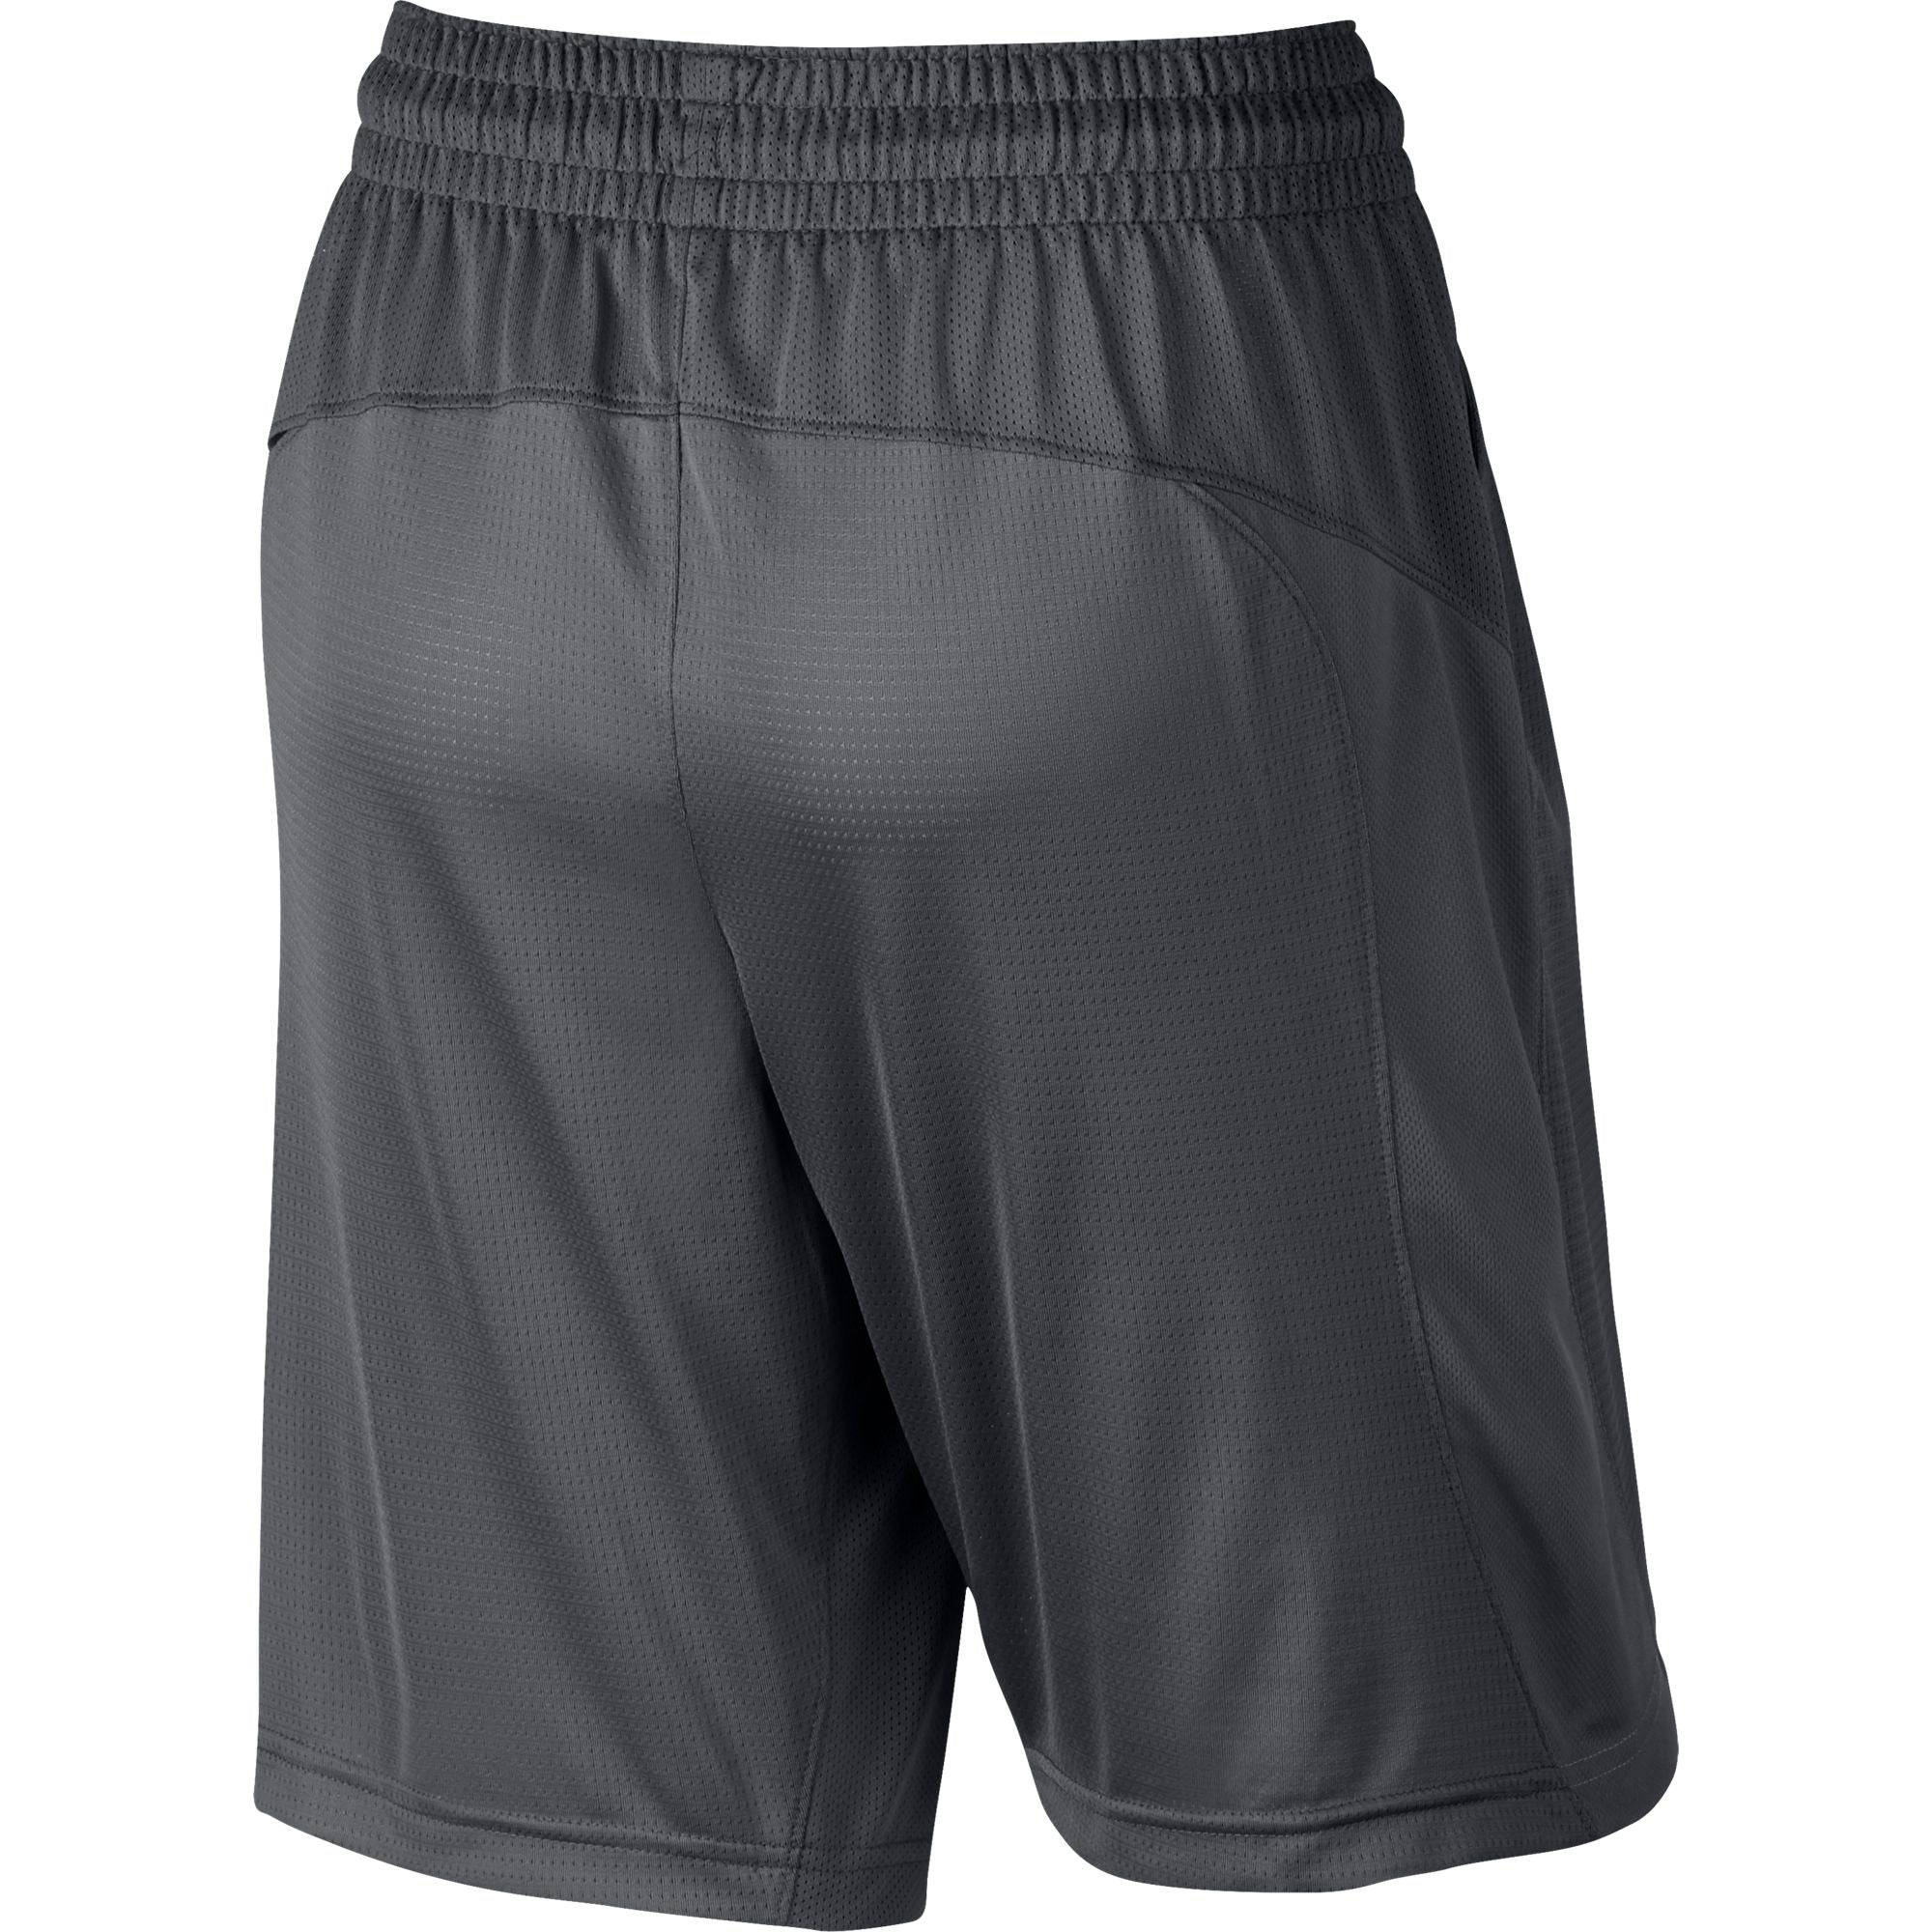 Nike Womens Basketball Shorts - Dark Grey/Anthracite